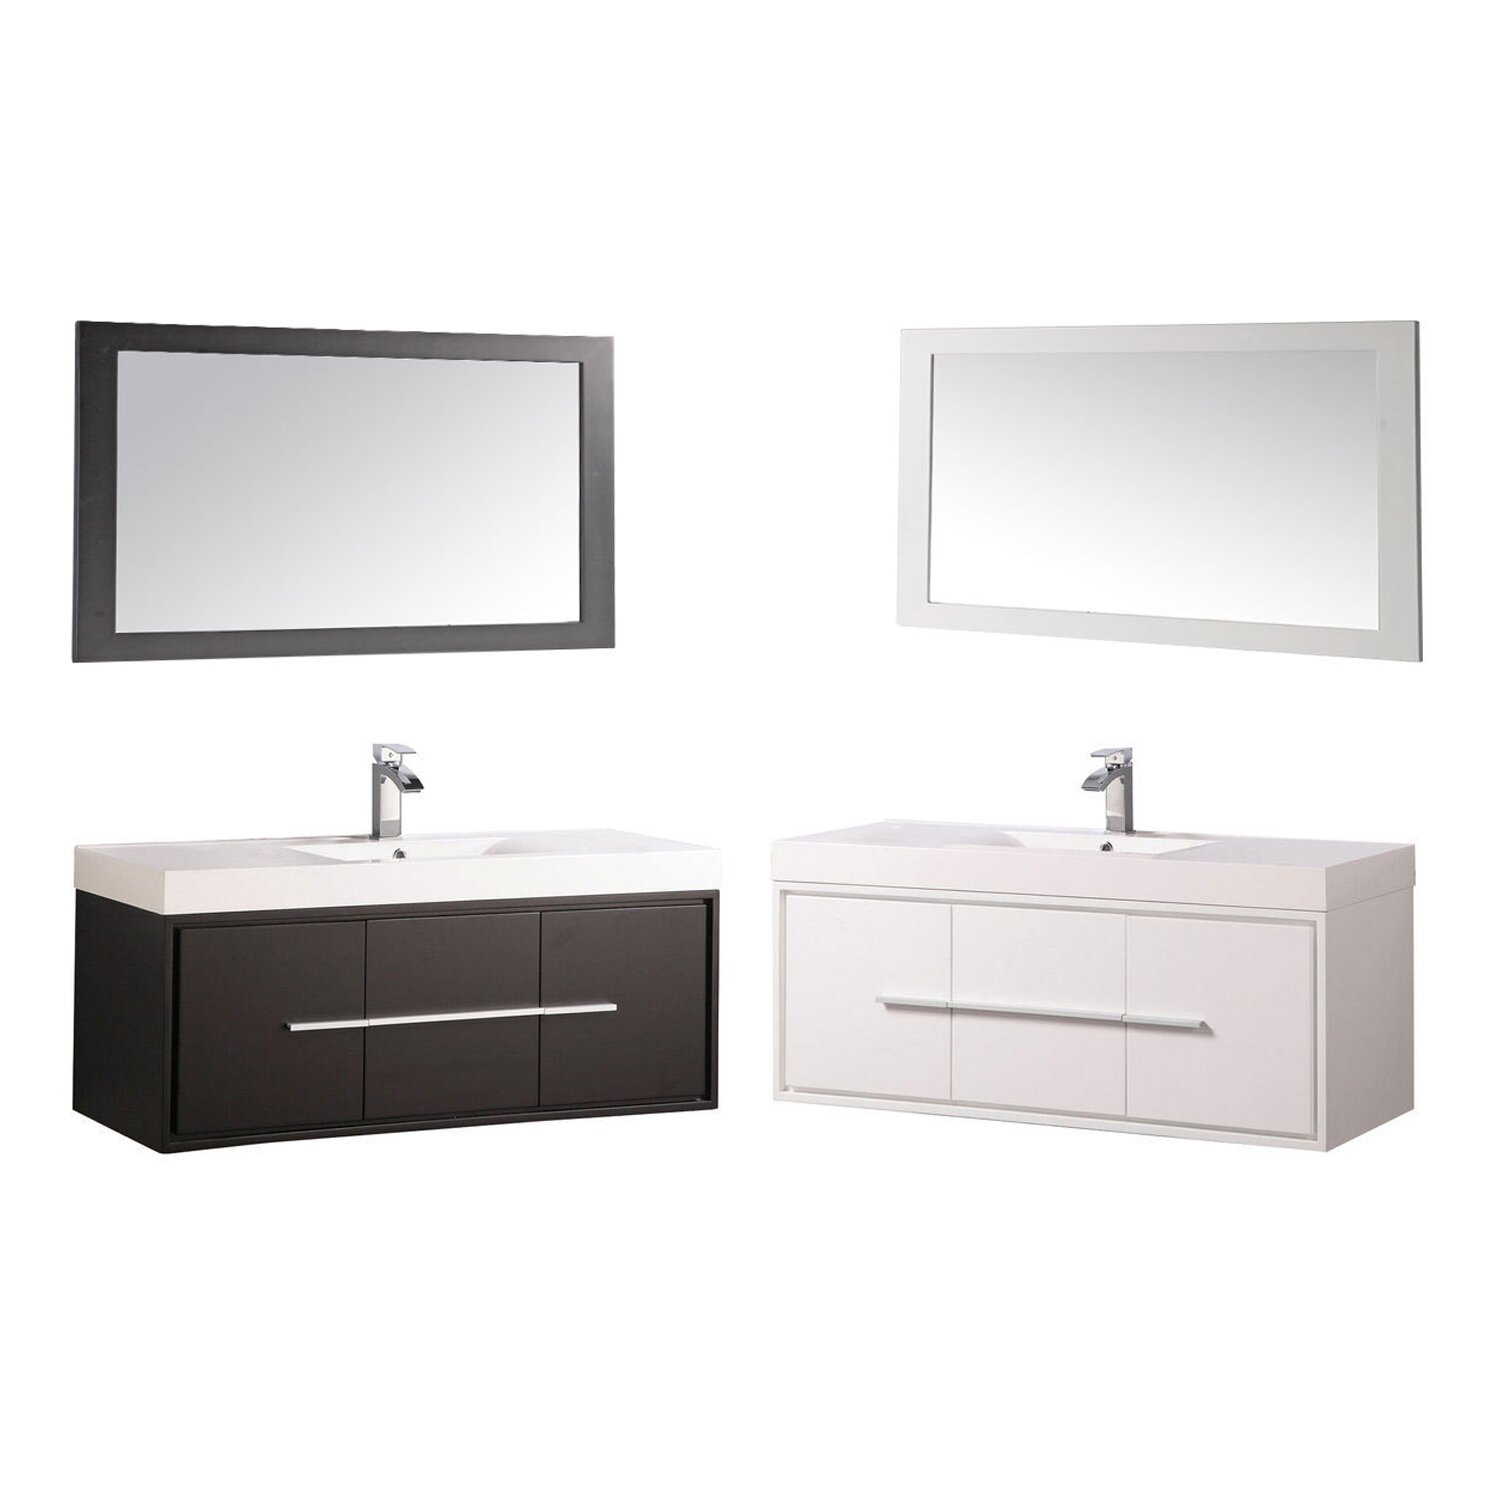 Mtdvanities cypress 48 single floating bathroom vanity Floating bathroom vanity